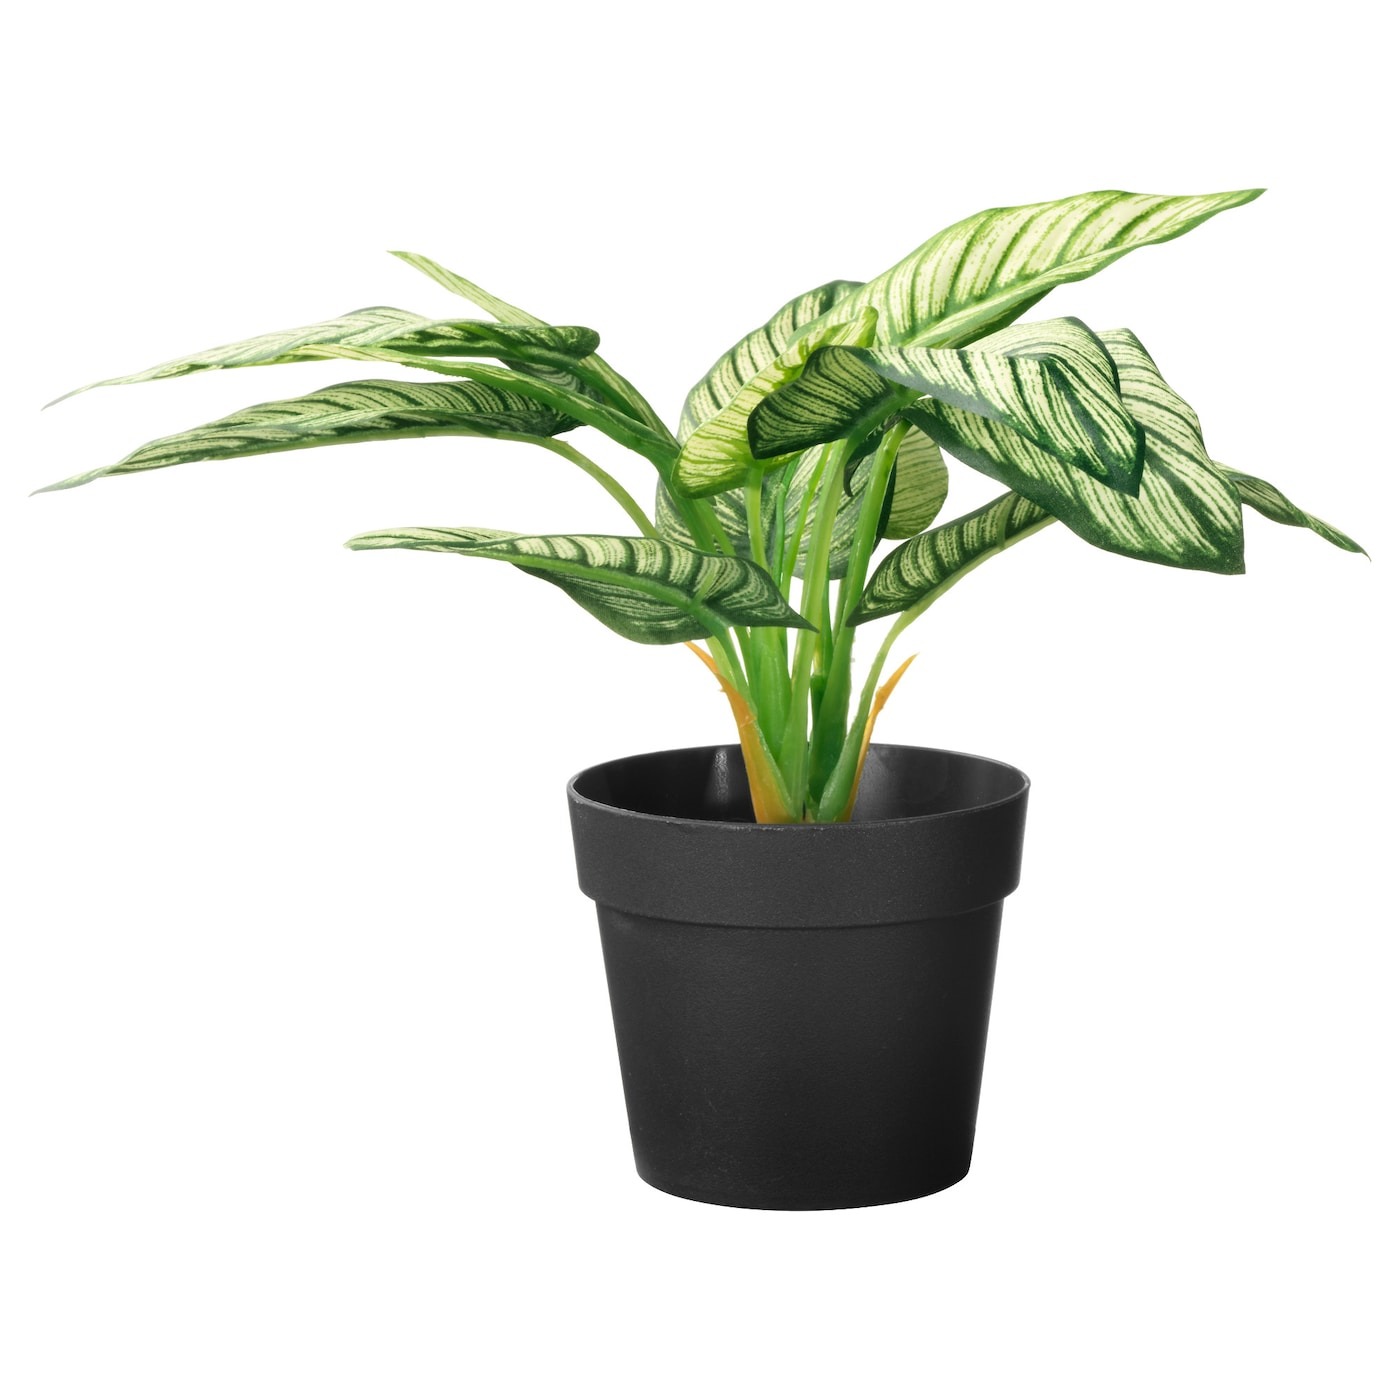 fejka plante artificielle en pot dieffenbachia 9 cm ikea. Black Bedroom Furniture Sets. Home Design Ideas